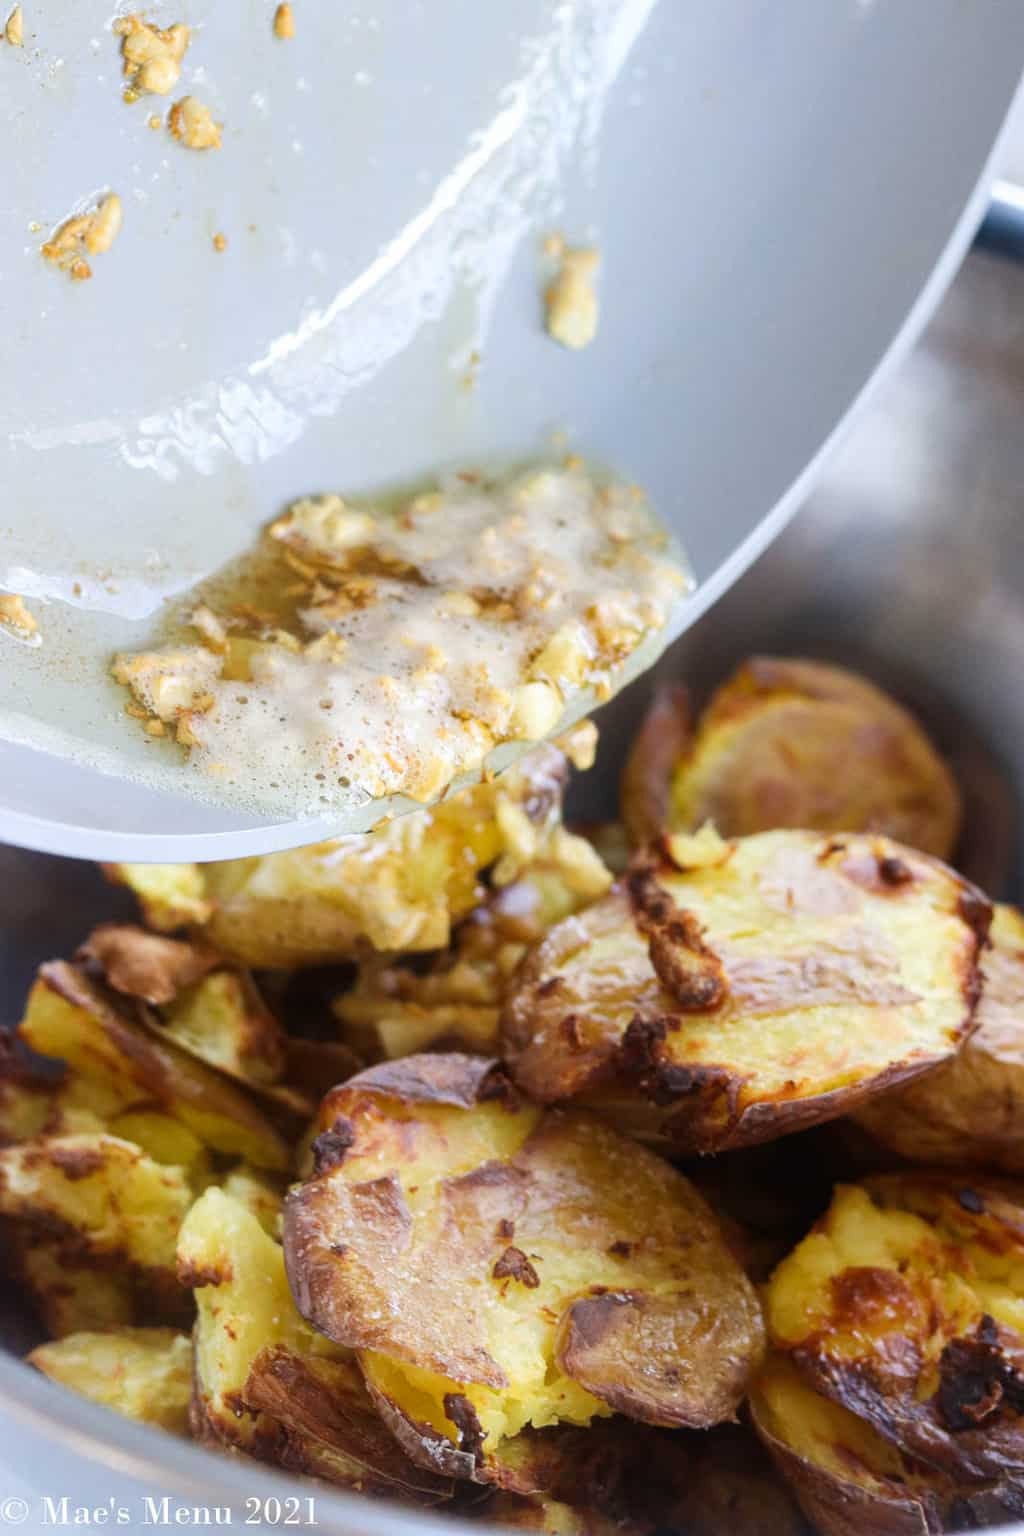 pouring garlic oil over the potatoes